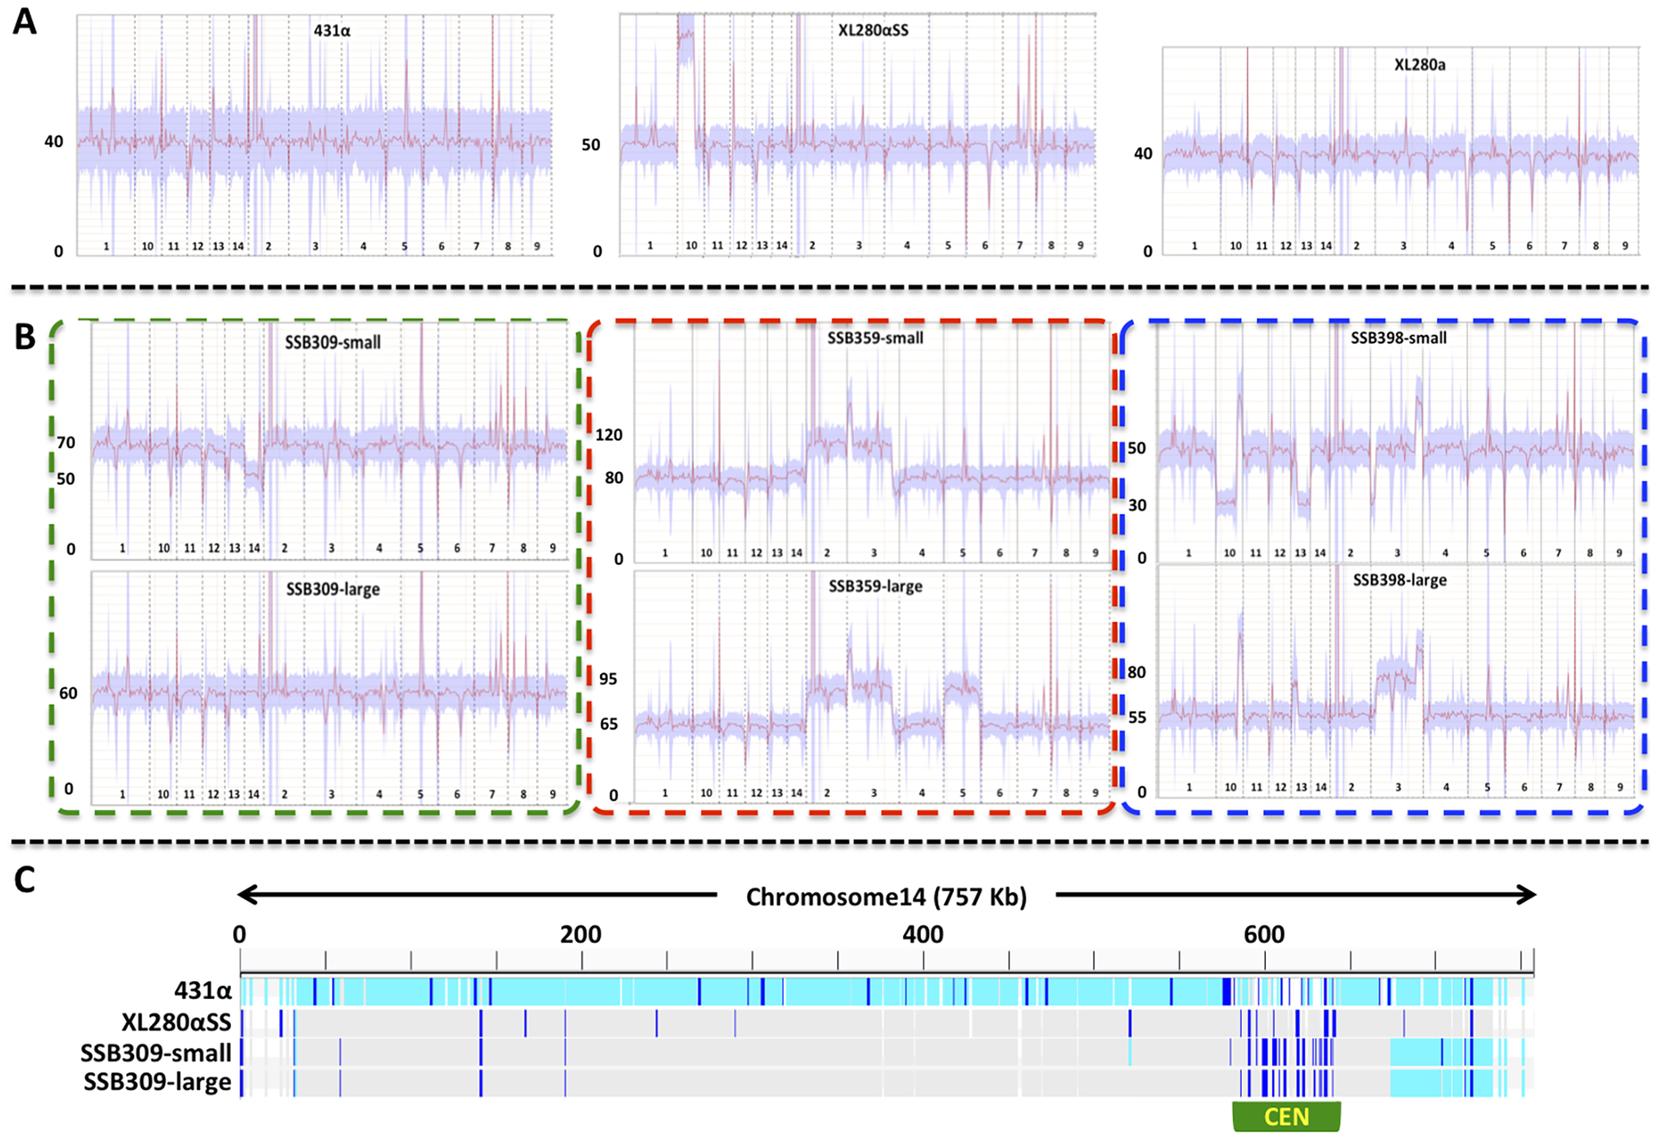 Transient aneuploid and persistent diploid progeny are generated from α-α unisexual reproduction.